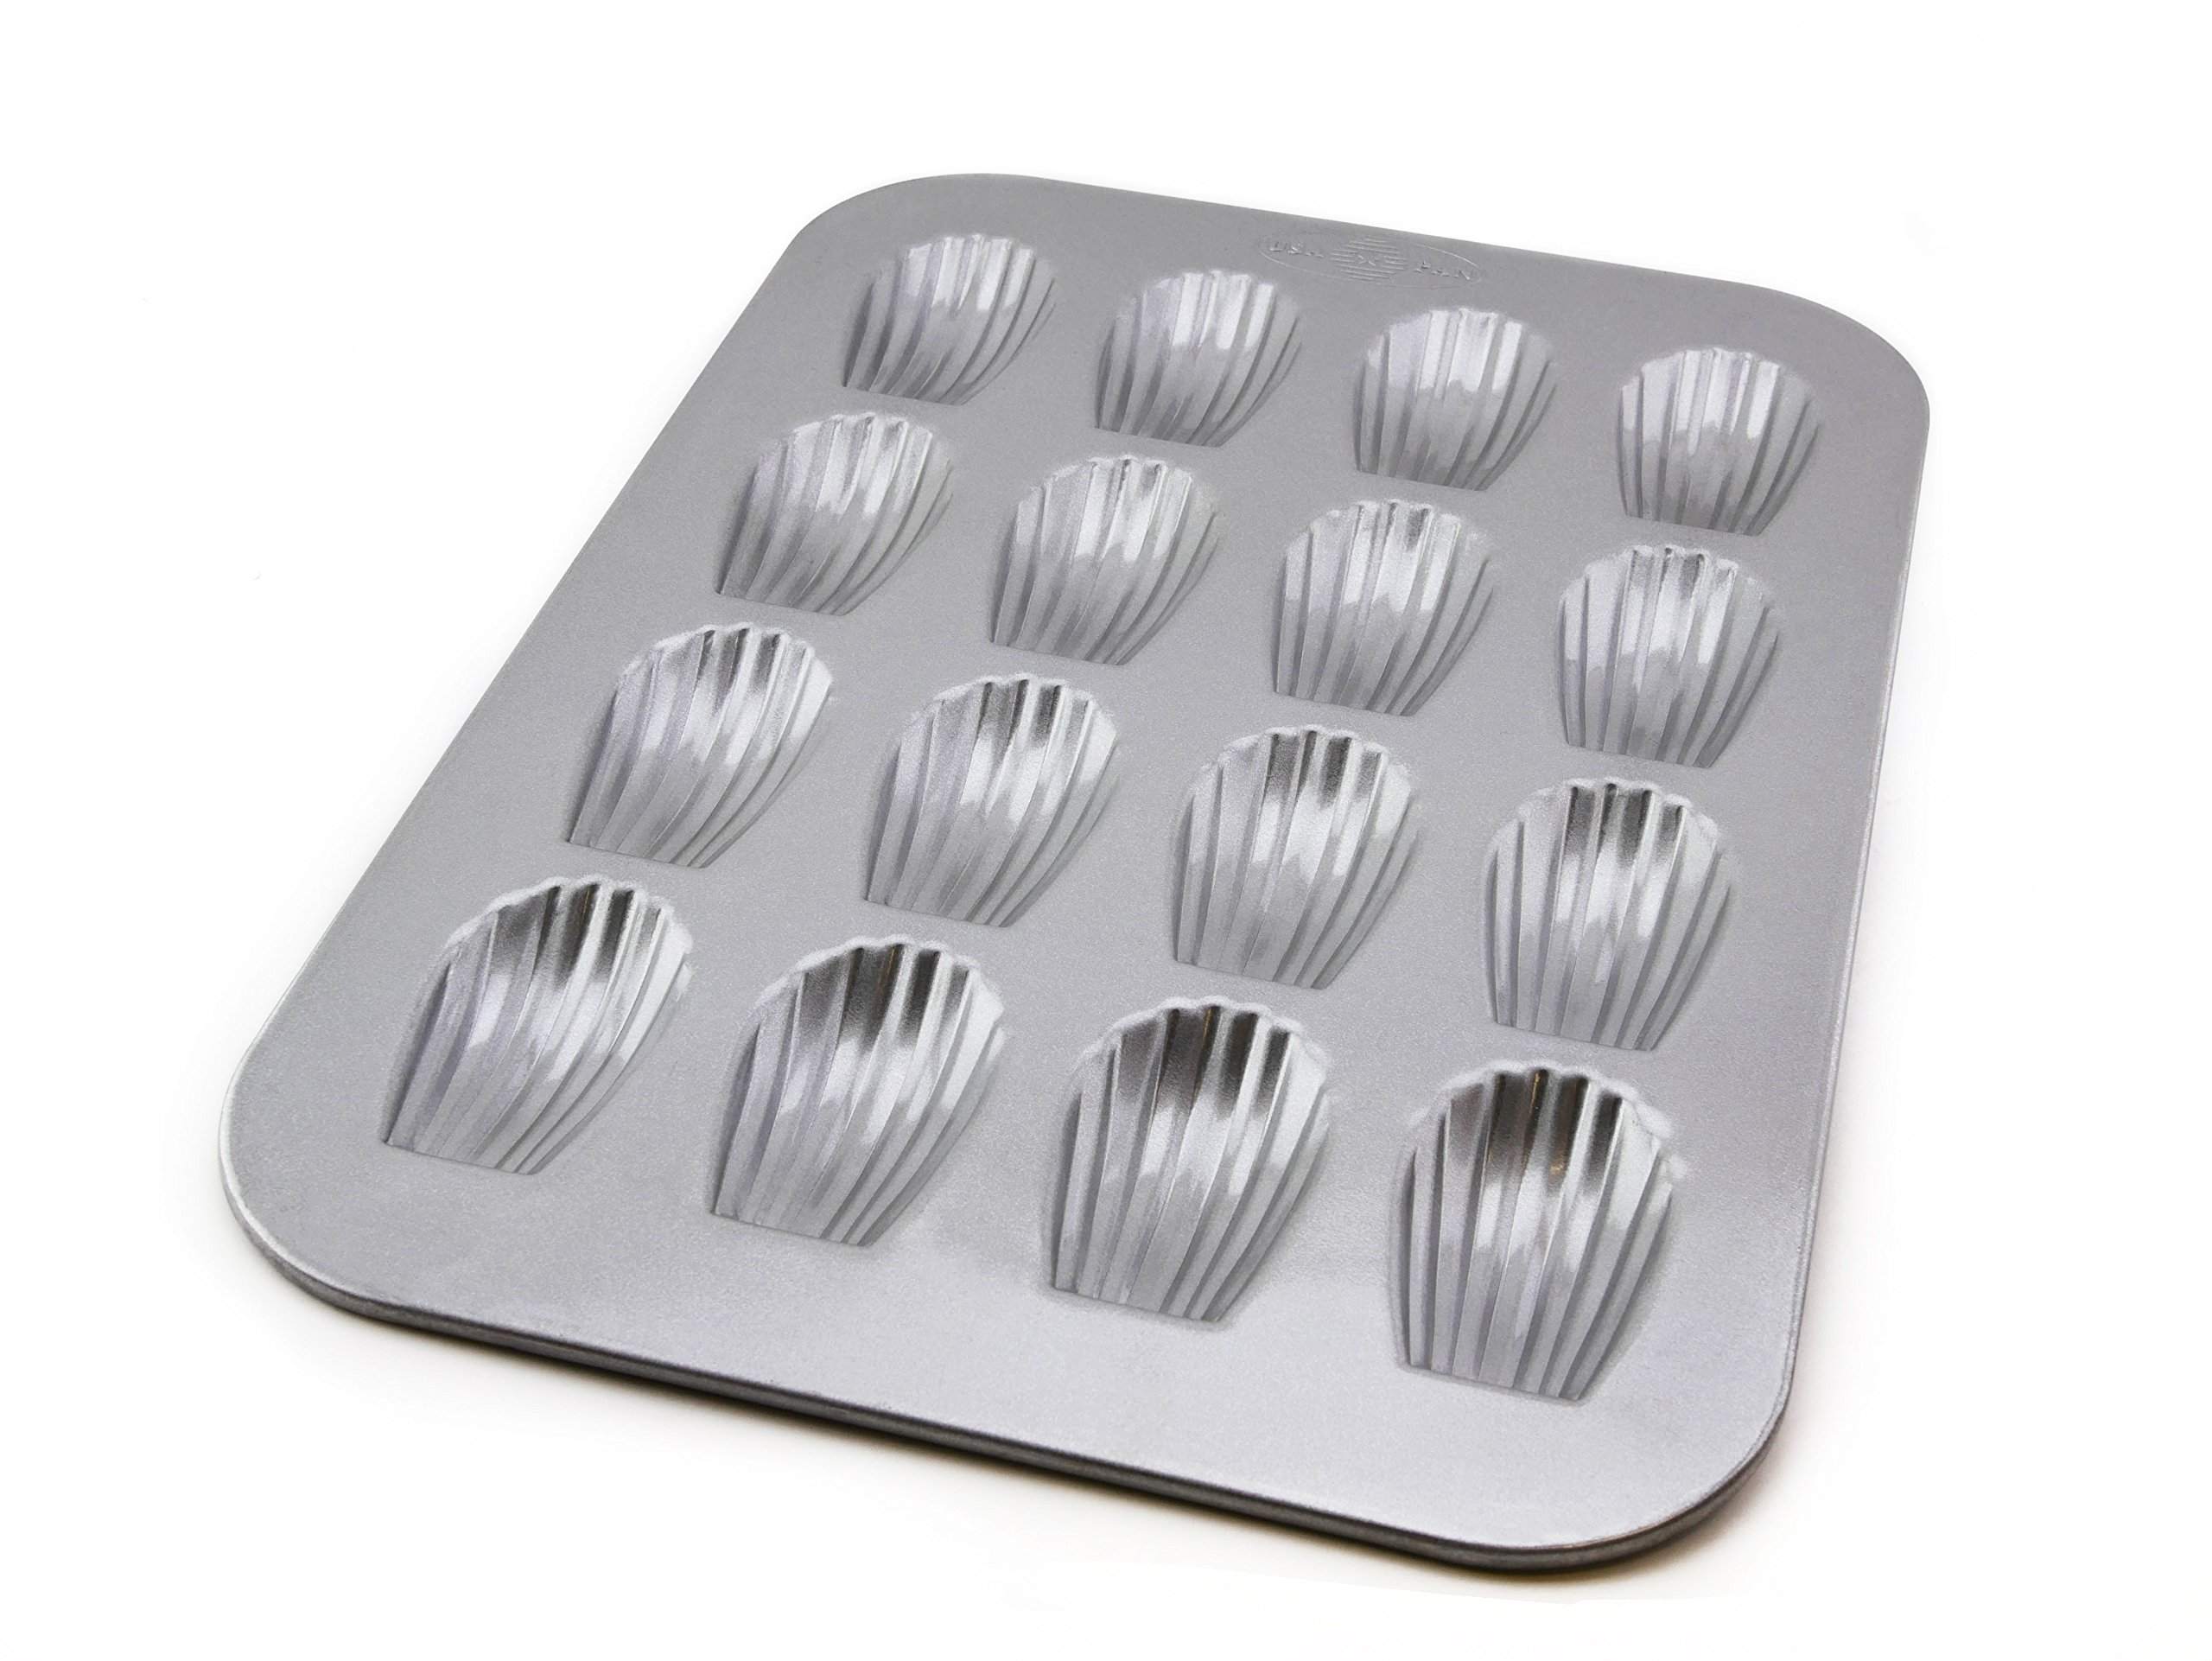 USA Pan Bakeware Madeleine Pan with 16 Wells, Warp Resistant Nonstick Baking Pan, Made in the USA from Aluminized Steel